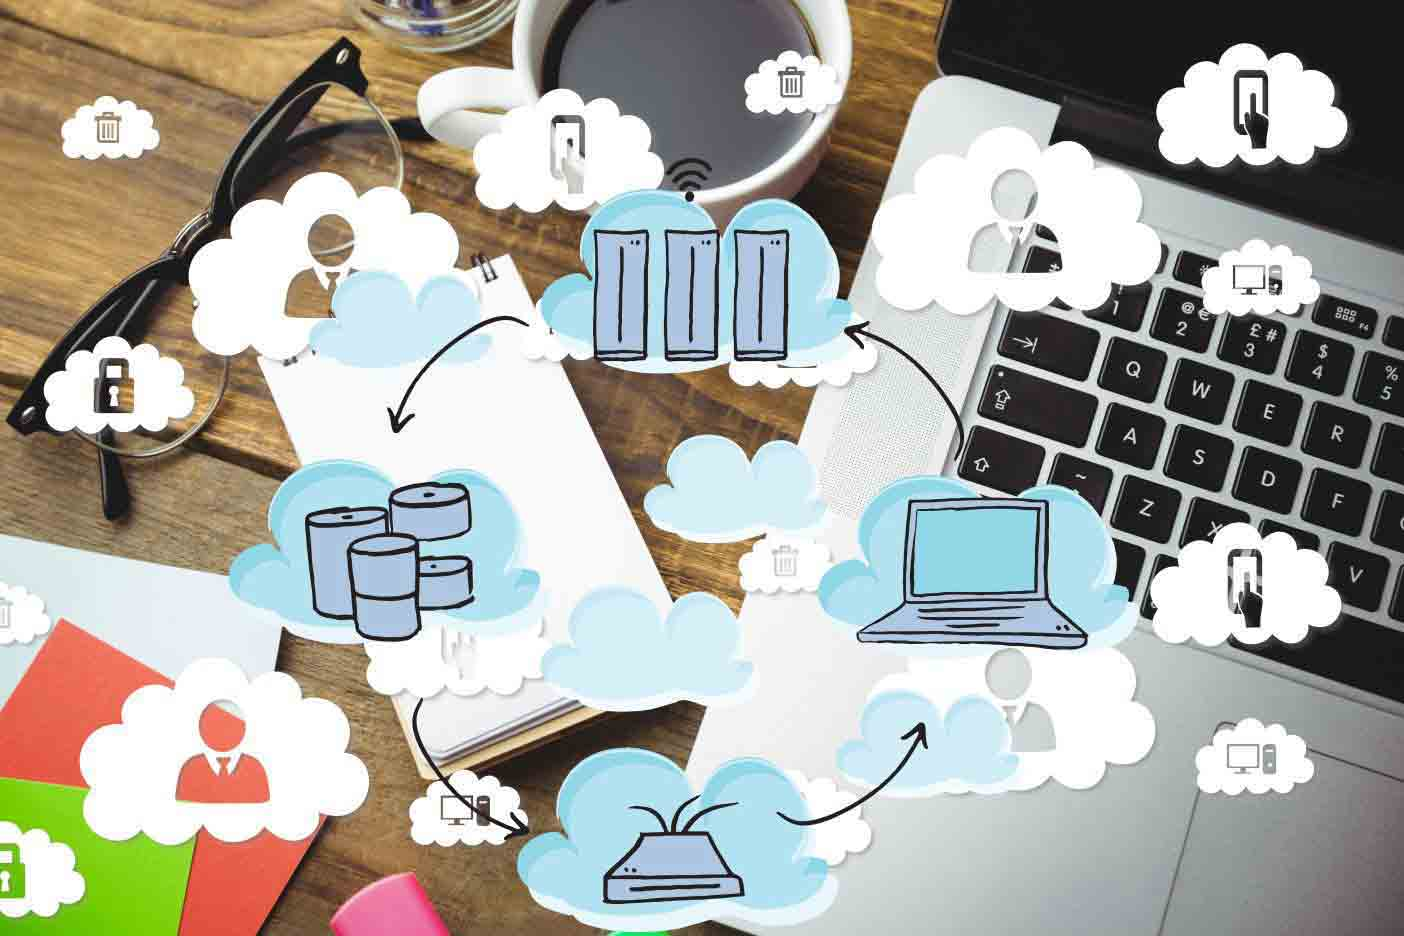 SaaS Applications in emerging markets